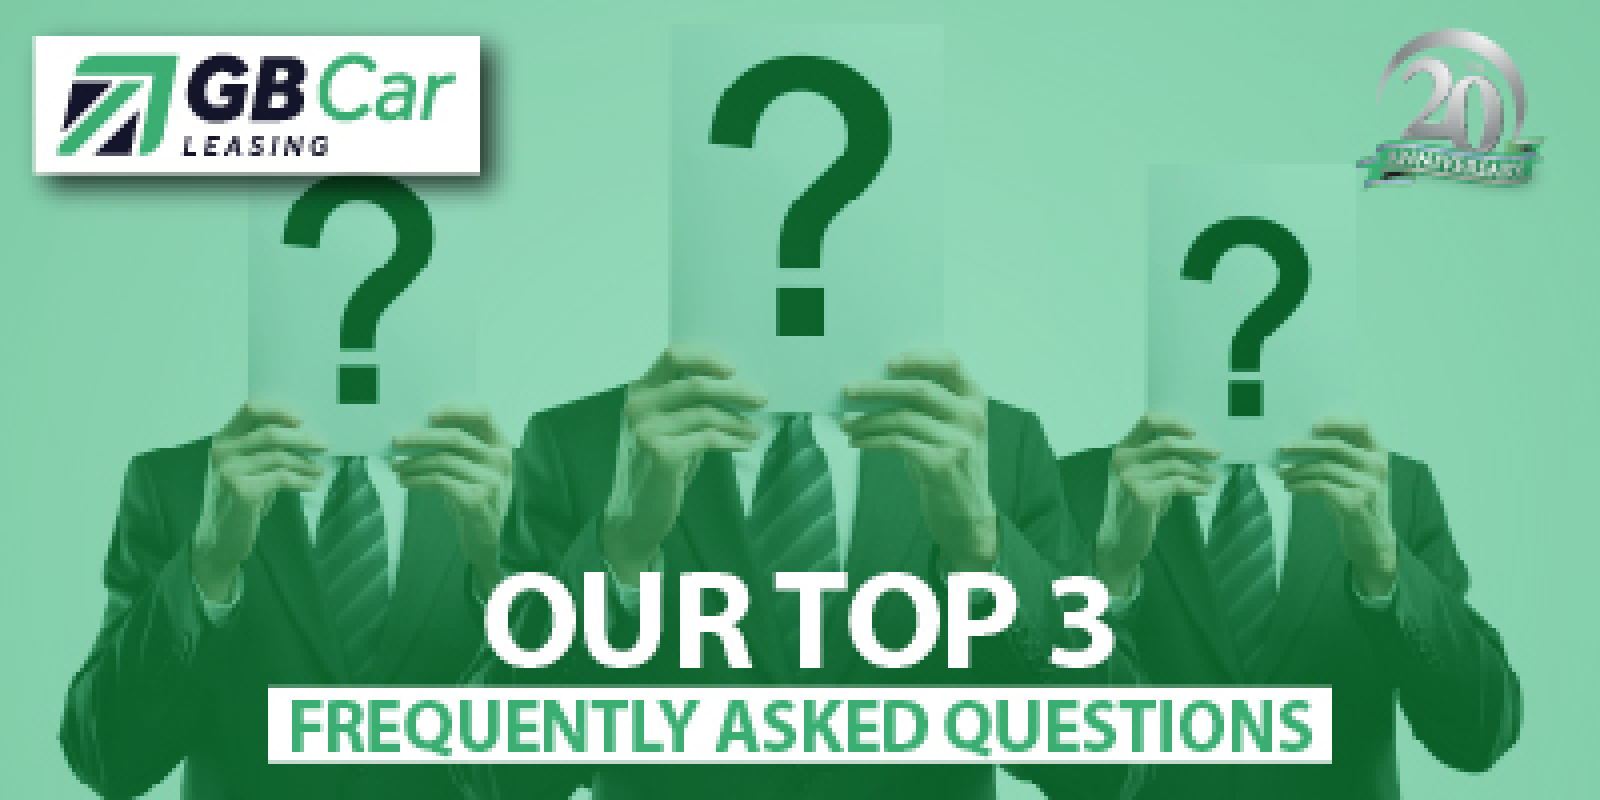 Our top 3 frequently asked questions